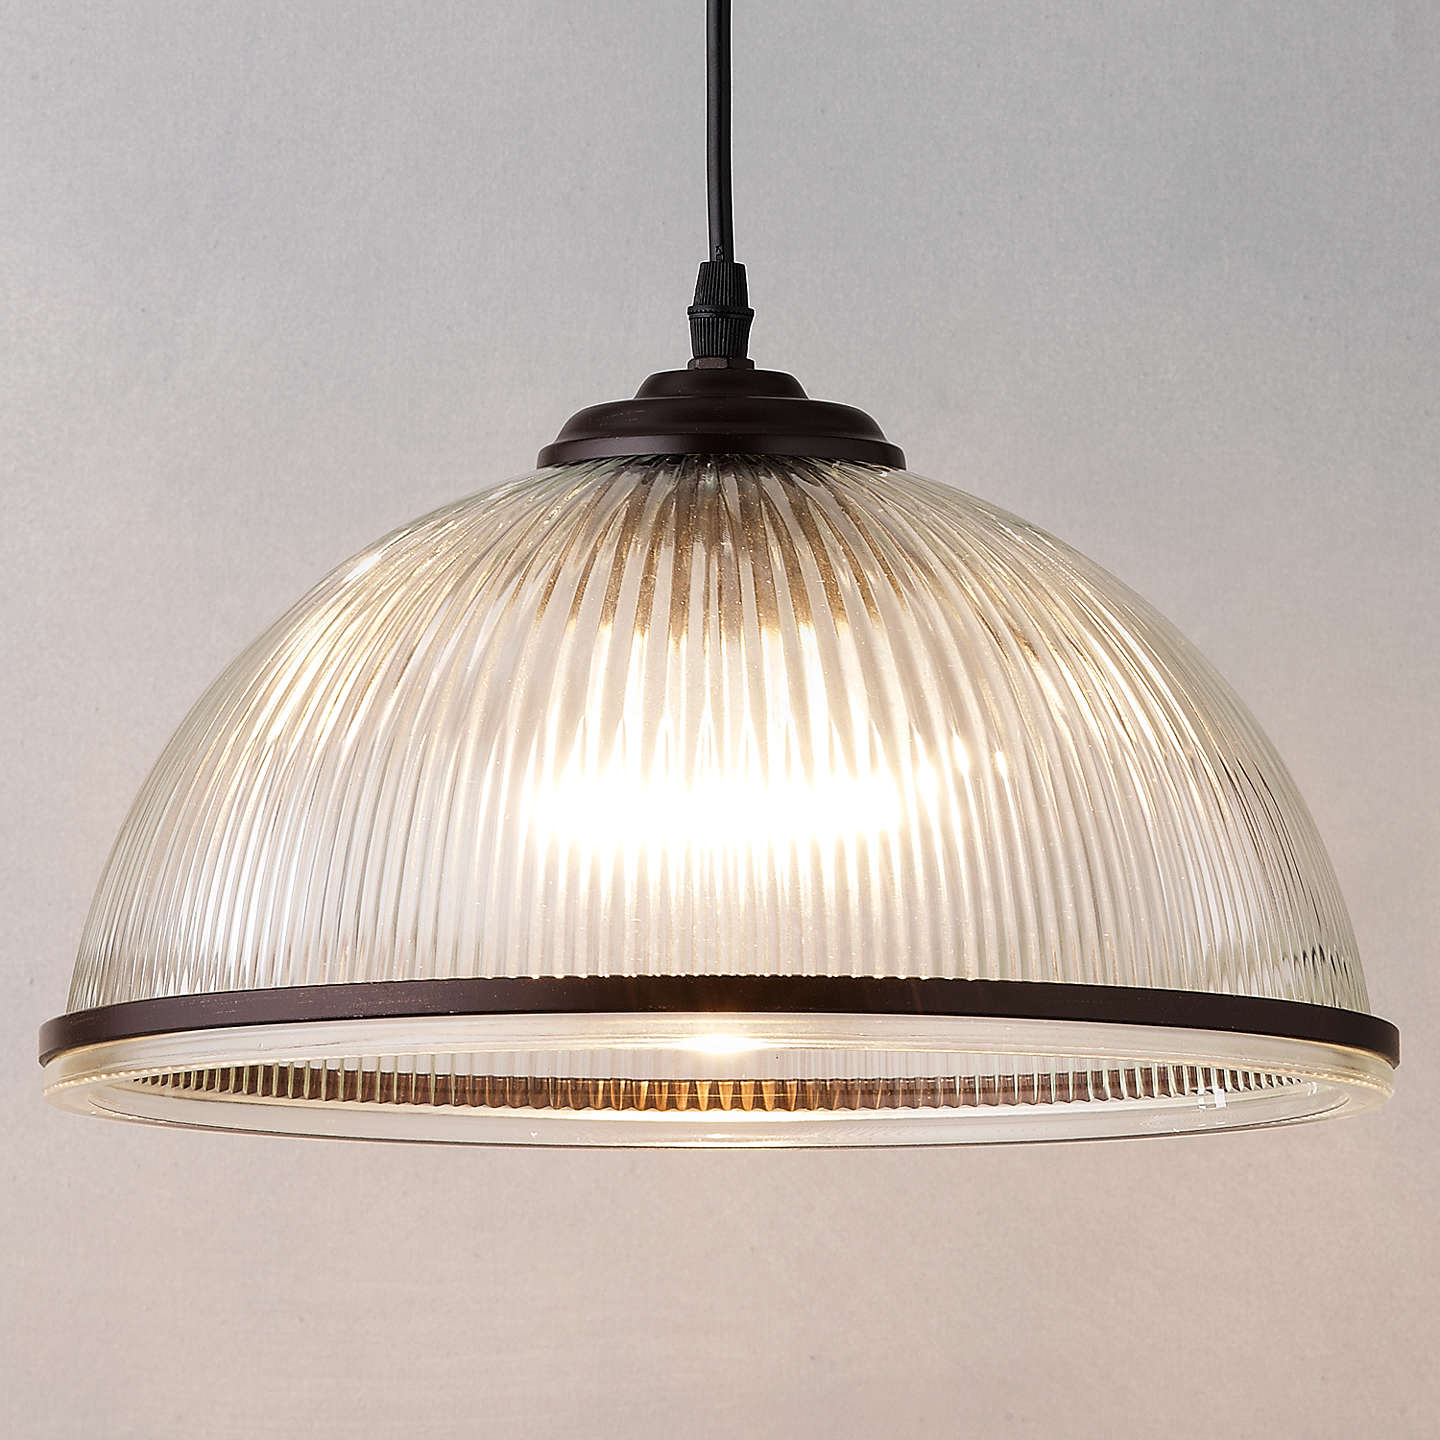 john lewis kitchen lights lewis tristan ceiling light at lewis 4911